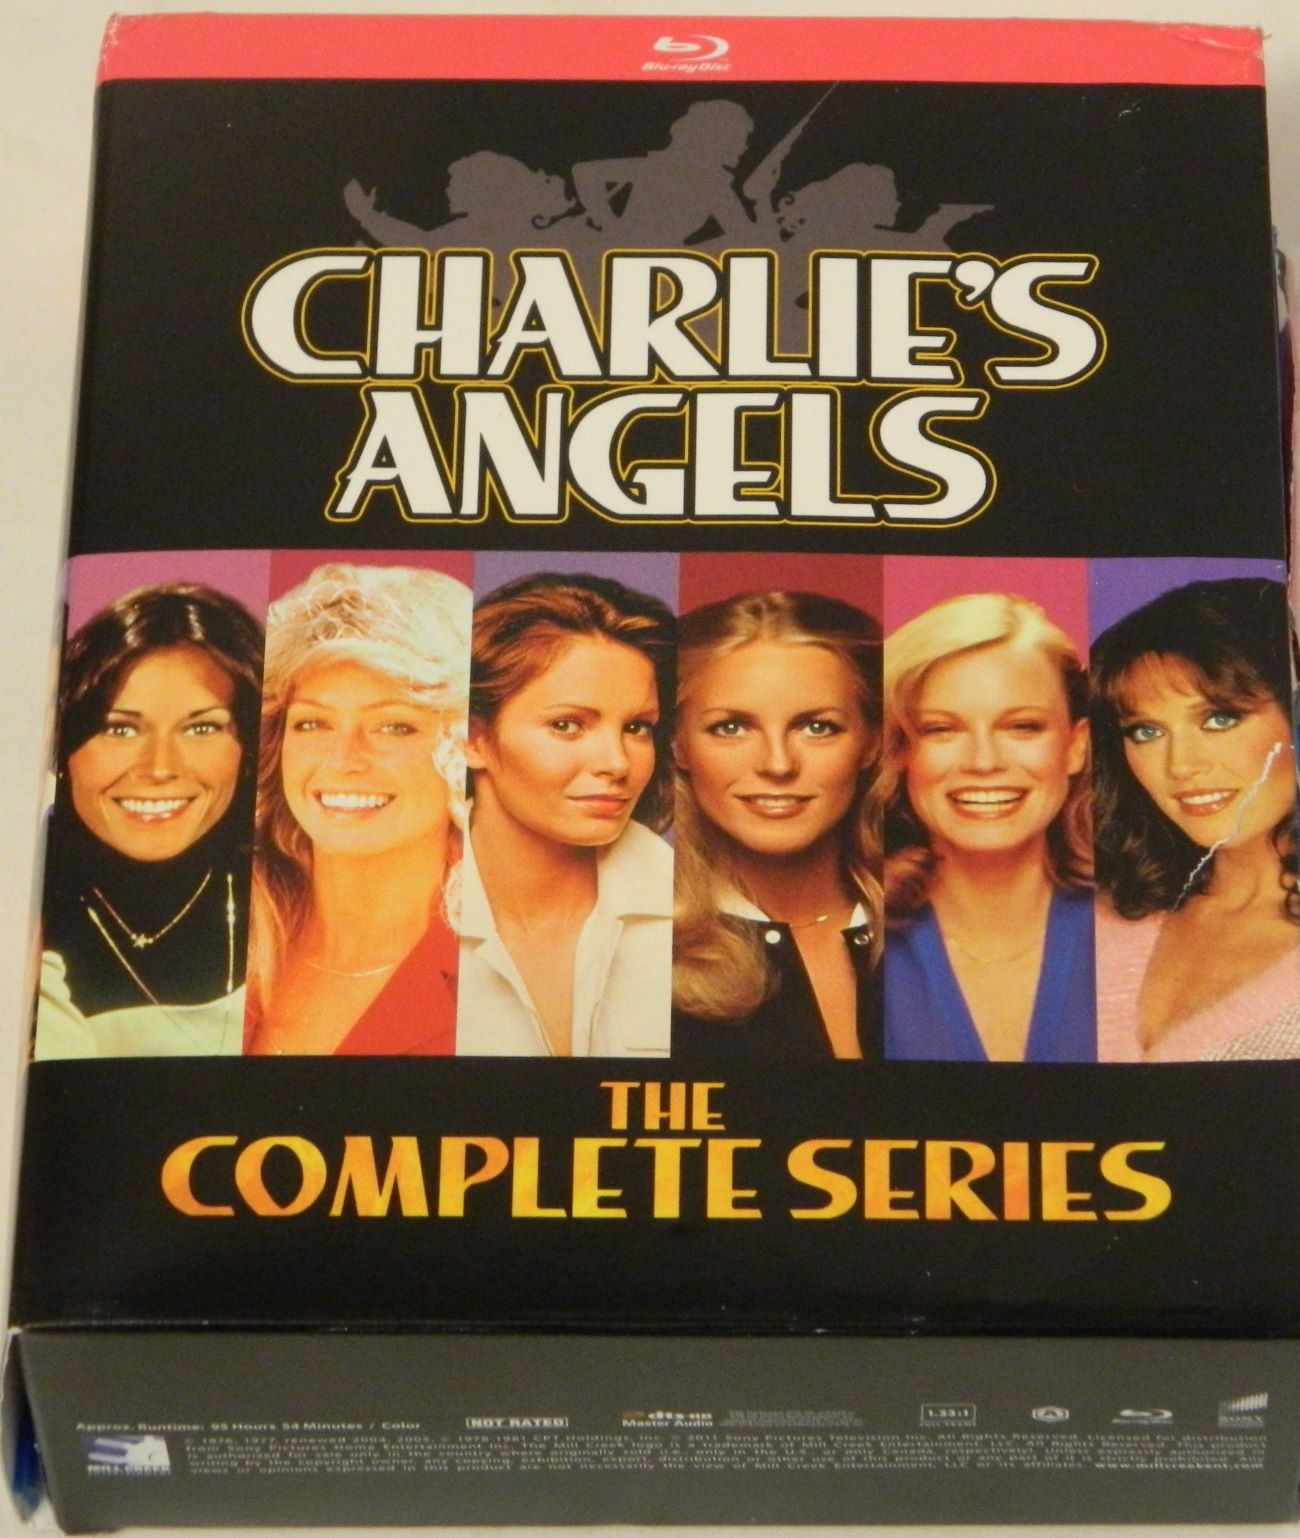 Charlie's Angels The Complete Series Blu-ray